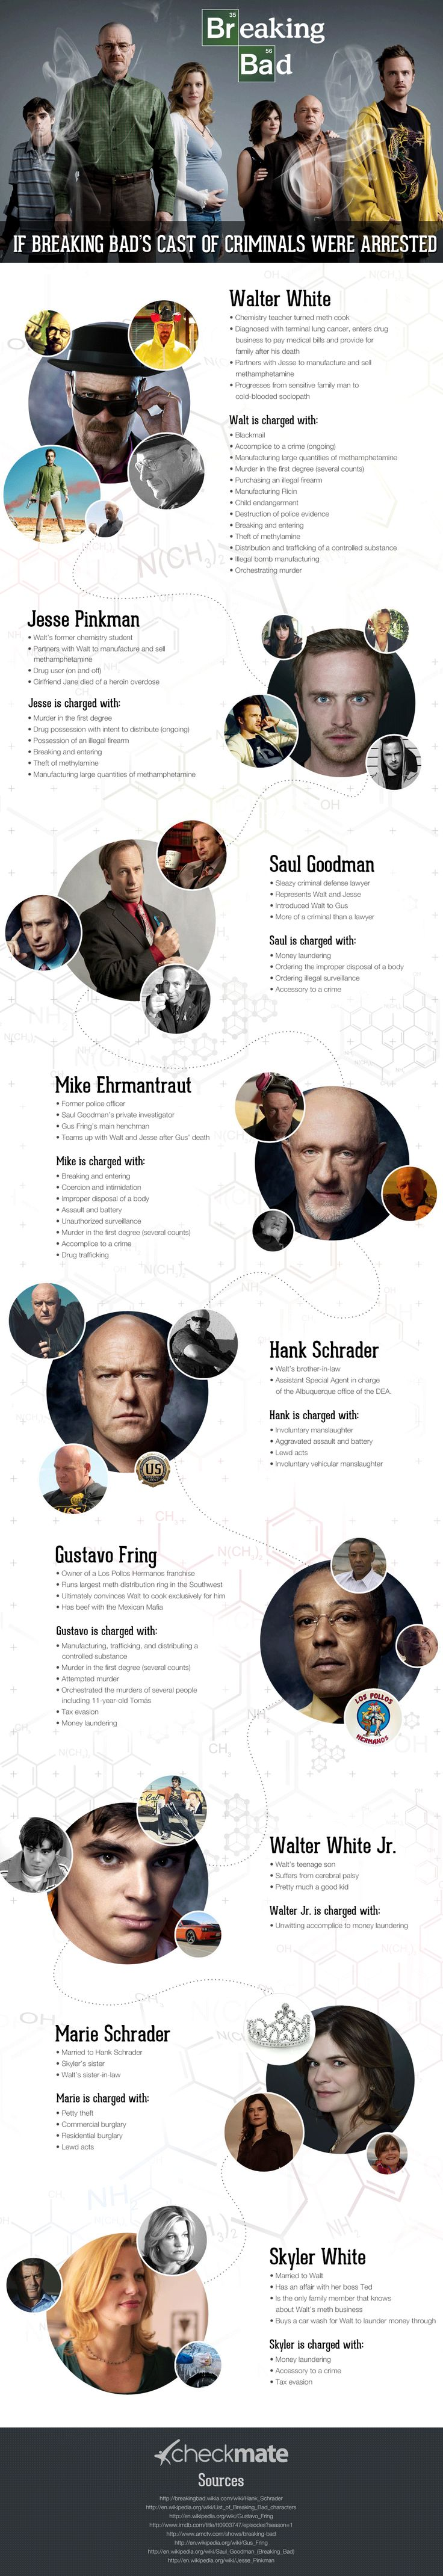 If Breaking Bad's Cast Of Criminals Were Arrested. . . #infographic